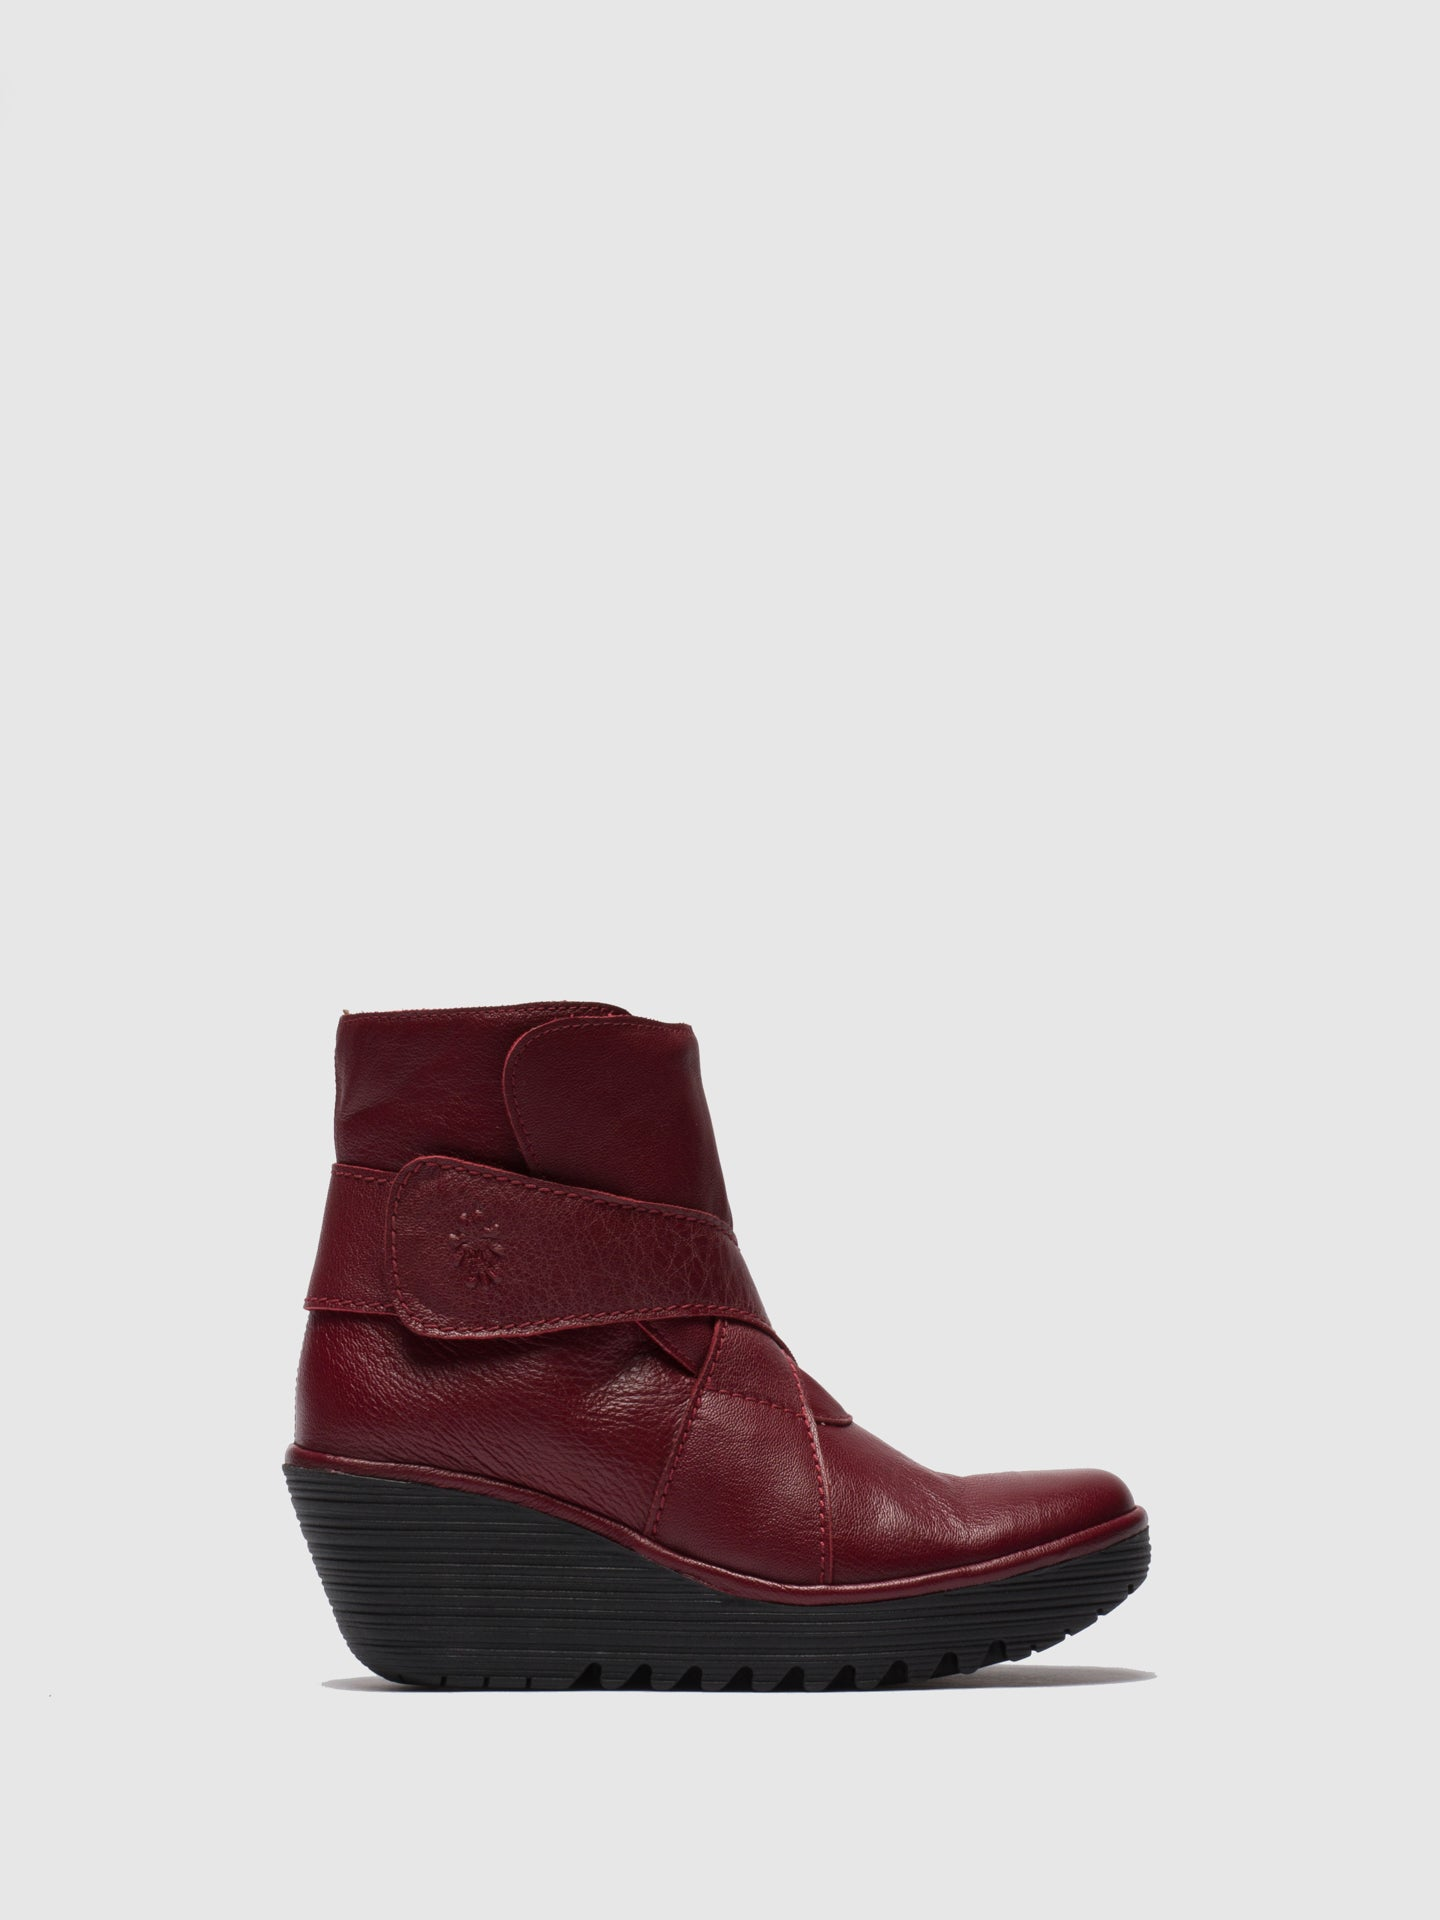 Fly London Red Velcro Ankle Boots